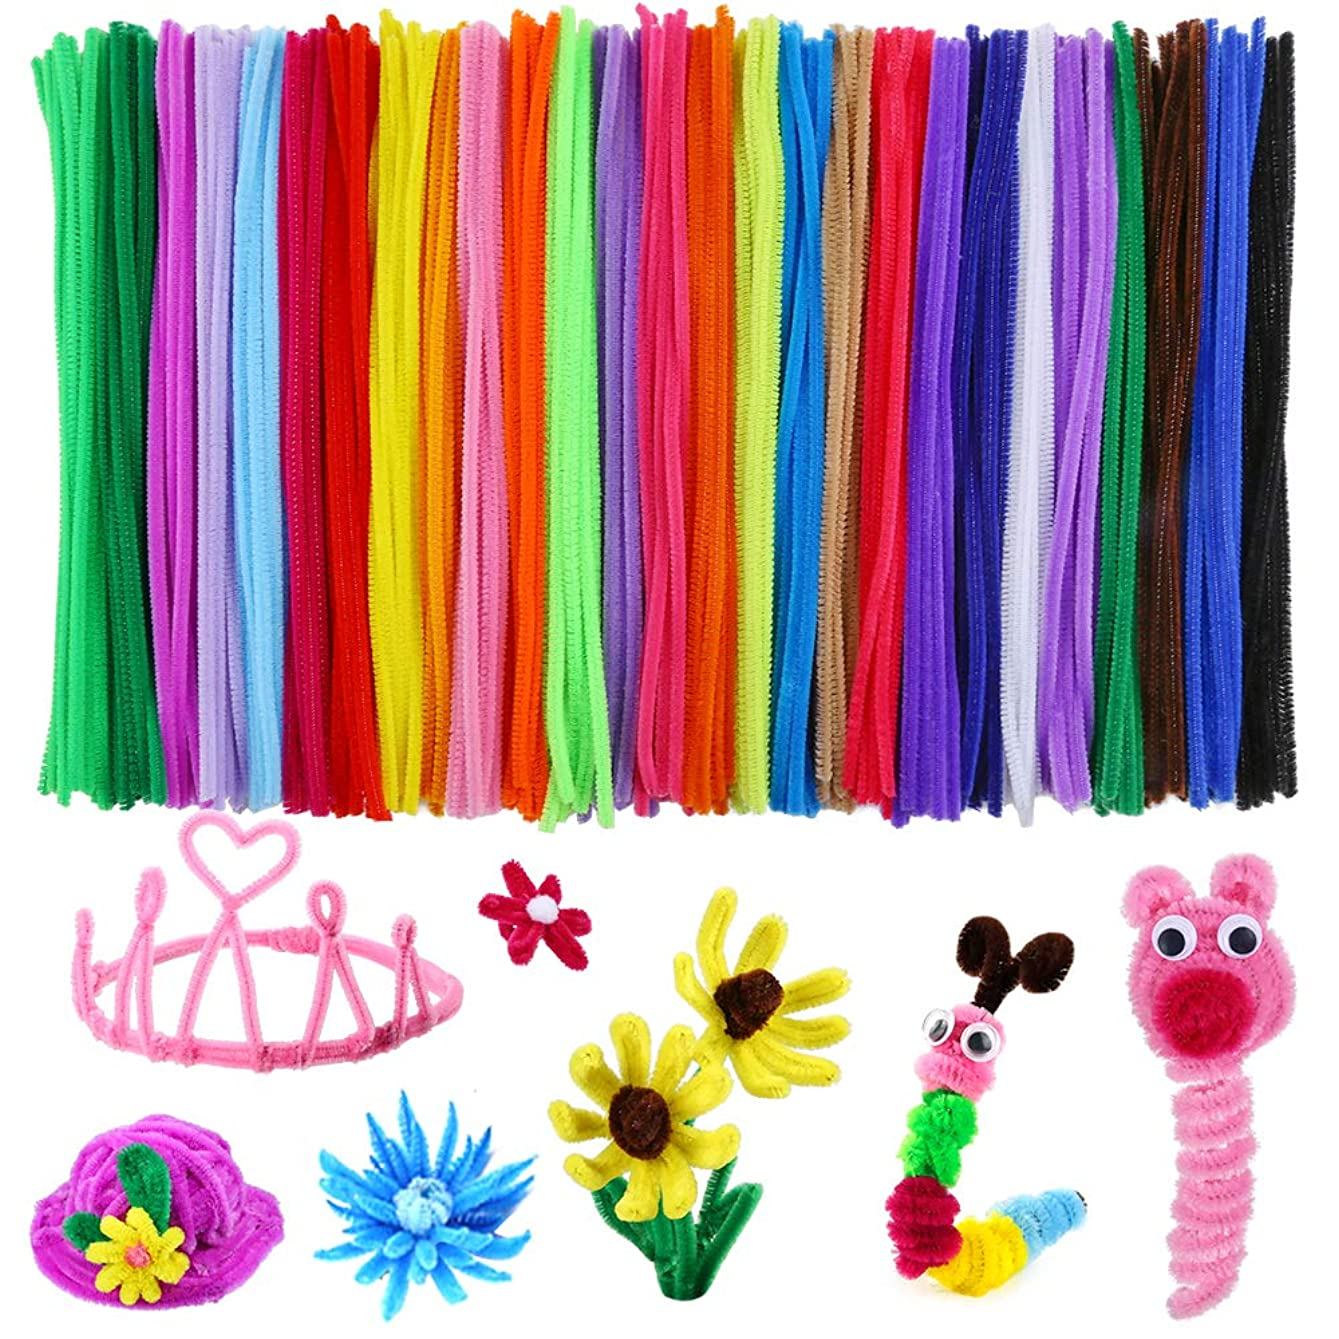 Caydo 324 Pieces Pipe Cleaners 27 Colors Chenille Stems for DIY Art Creative Crafts Decorations (6 mm x 12 Inch) eoermz735236